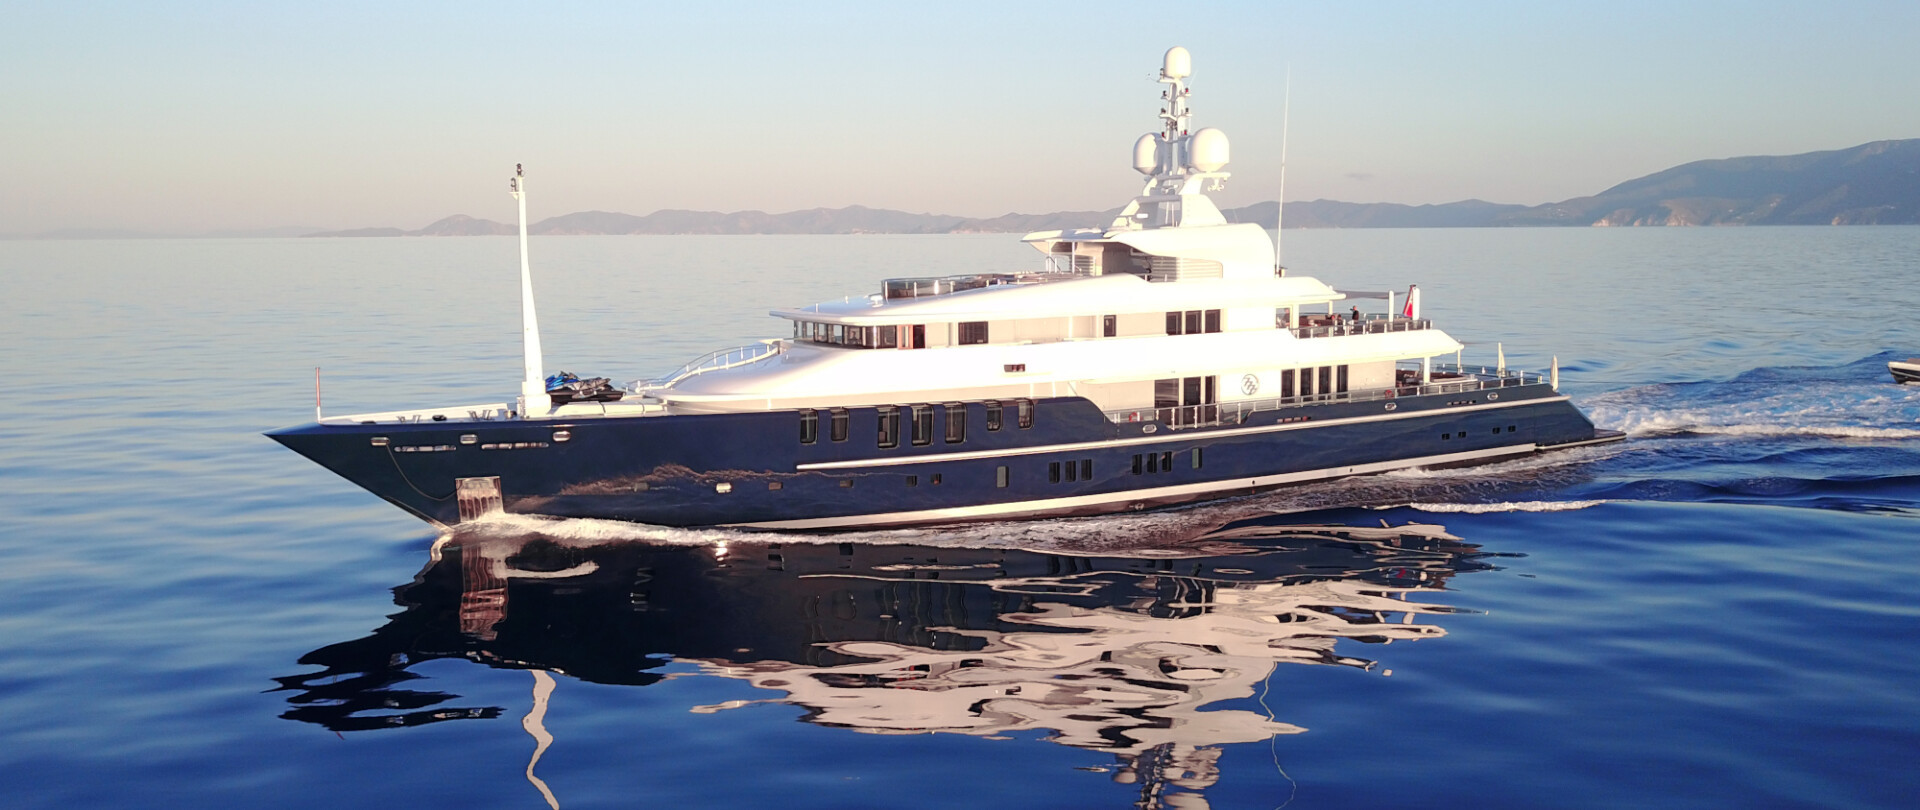 Triple Seven joins our sales fleet with new asking price of €38m photo 1